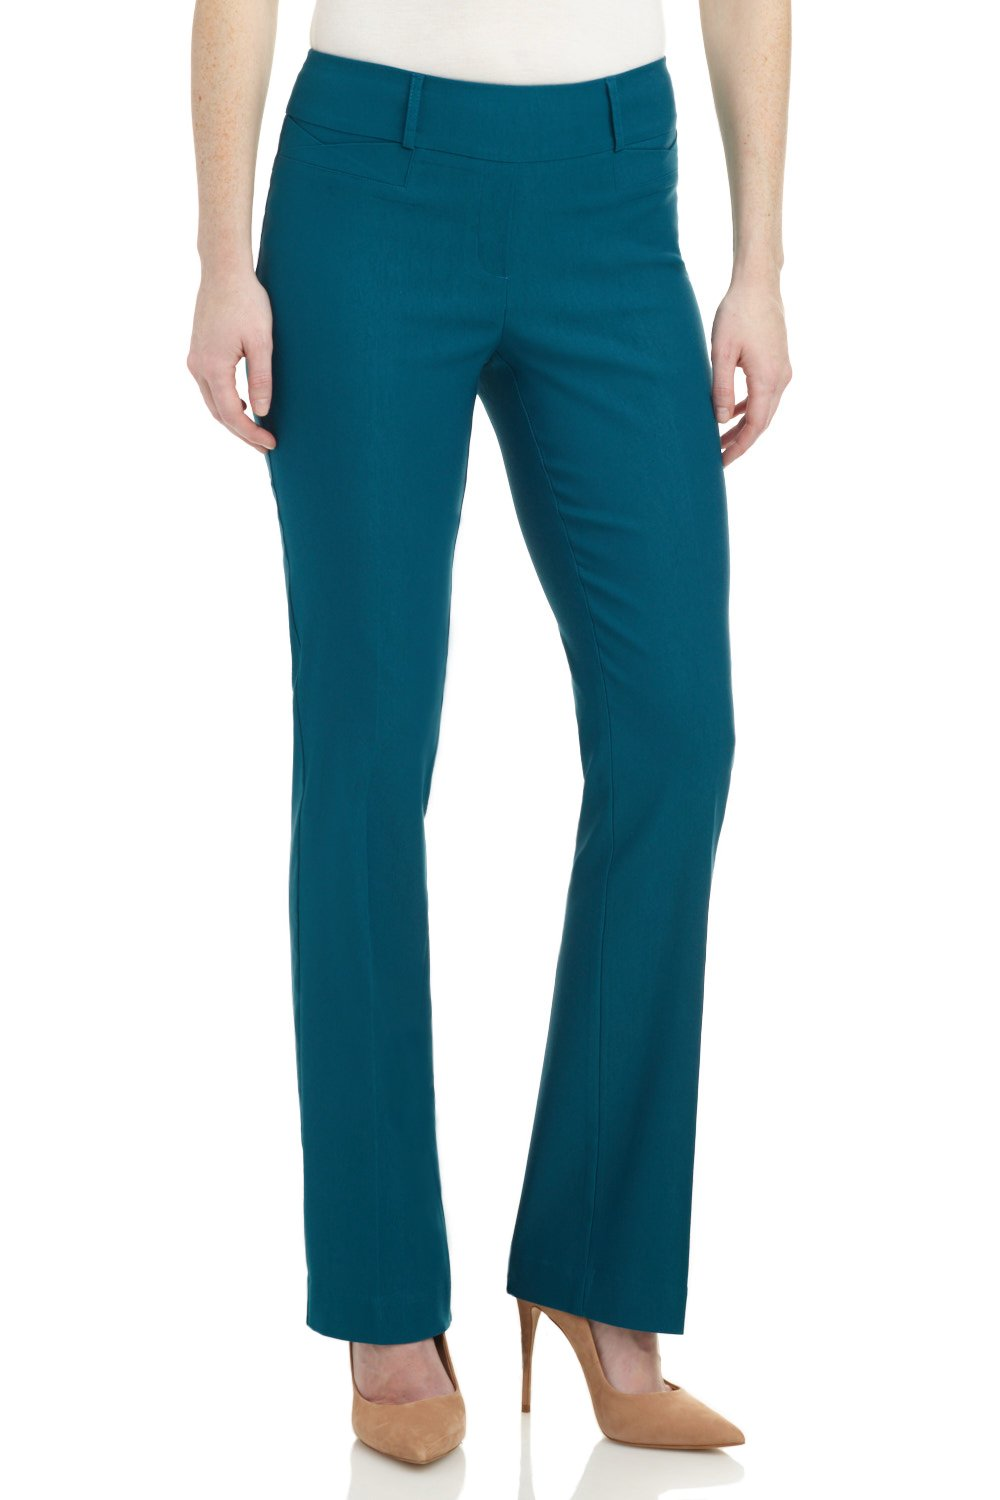 Rekucci Women's ''Ease In To Comfort Fit'' Barely Bootcut Stretch Pants (14,Teal)